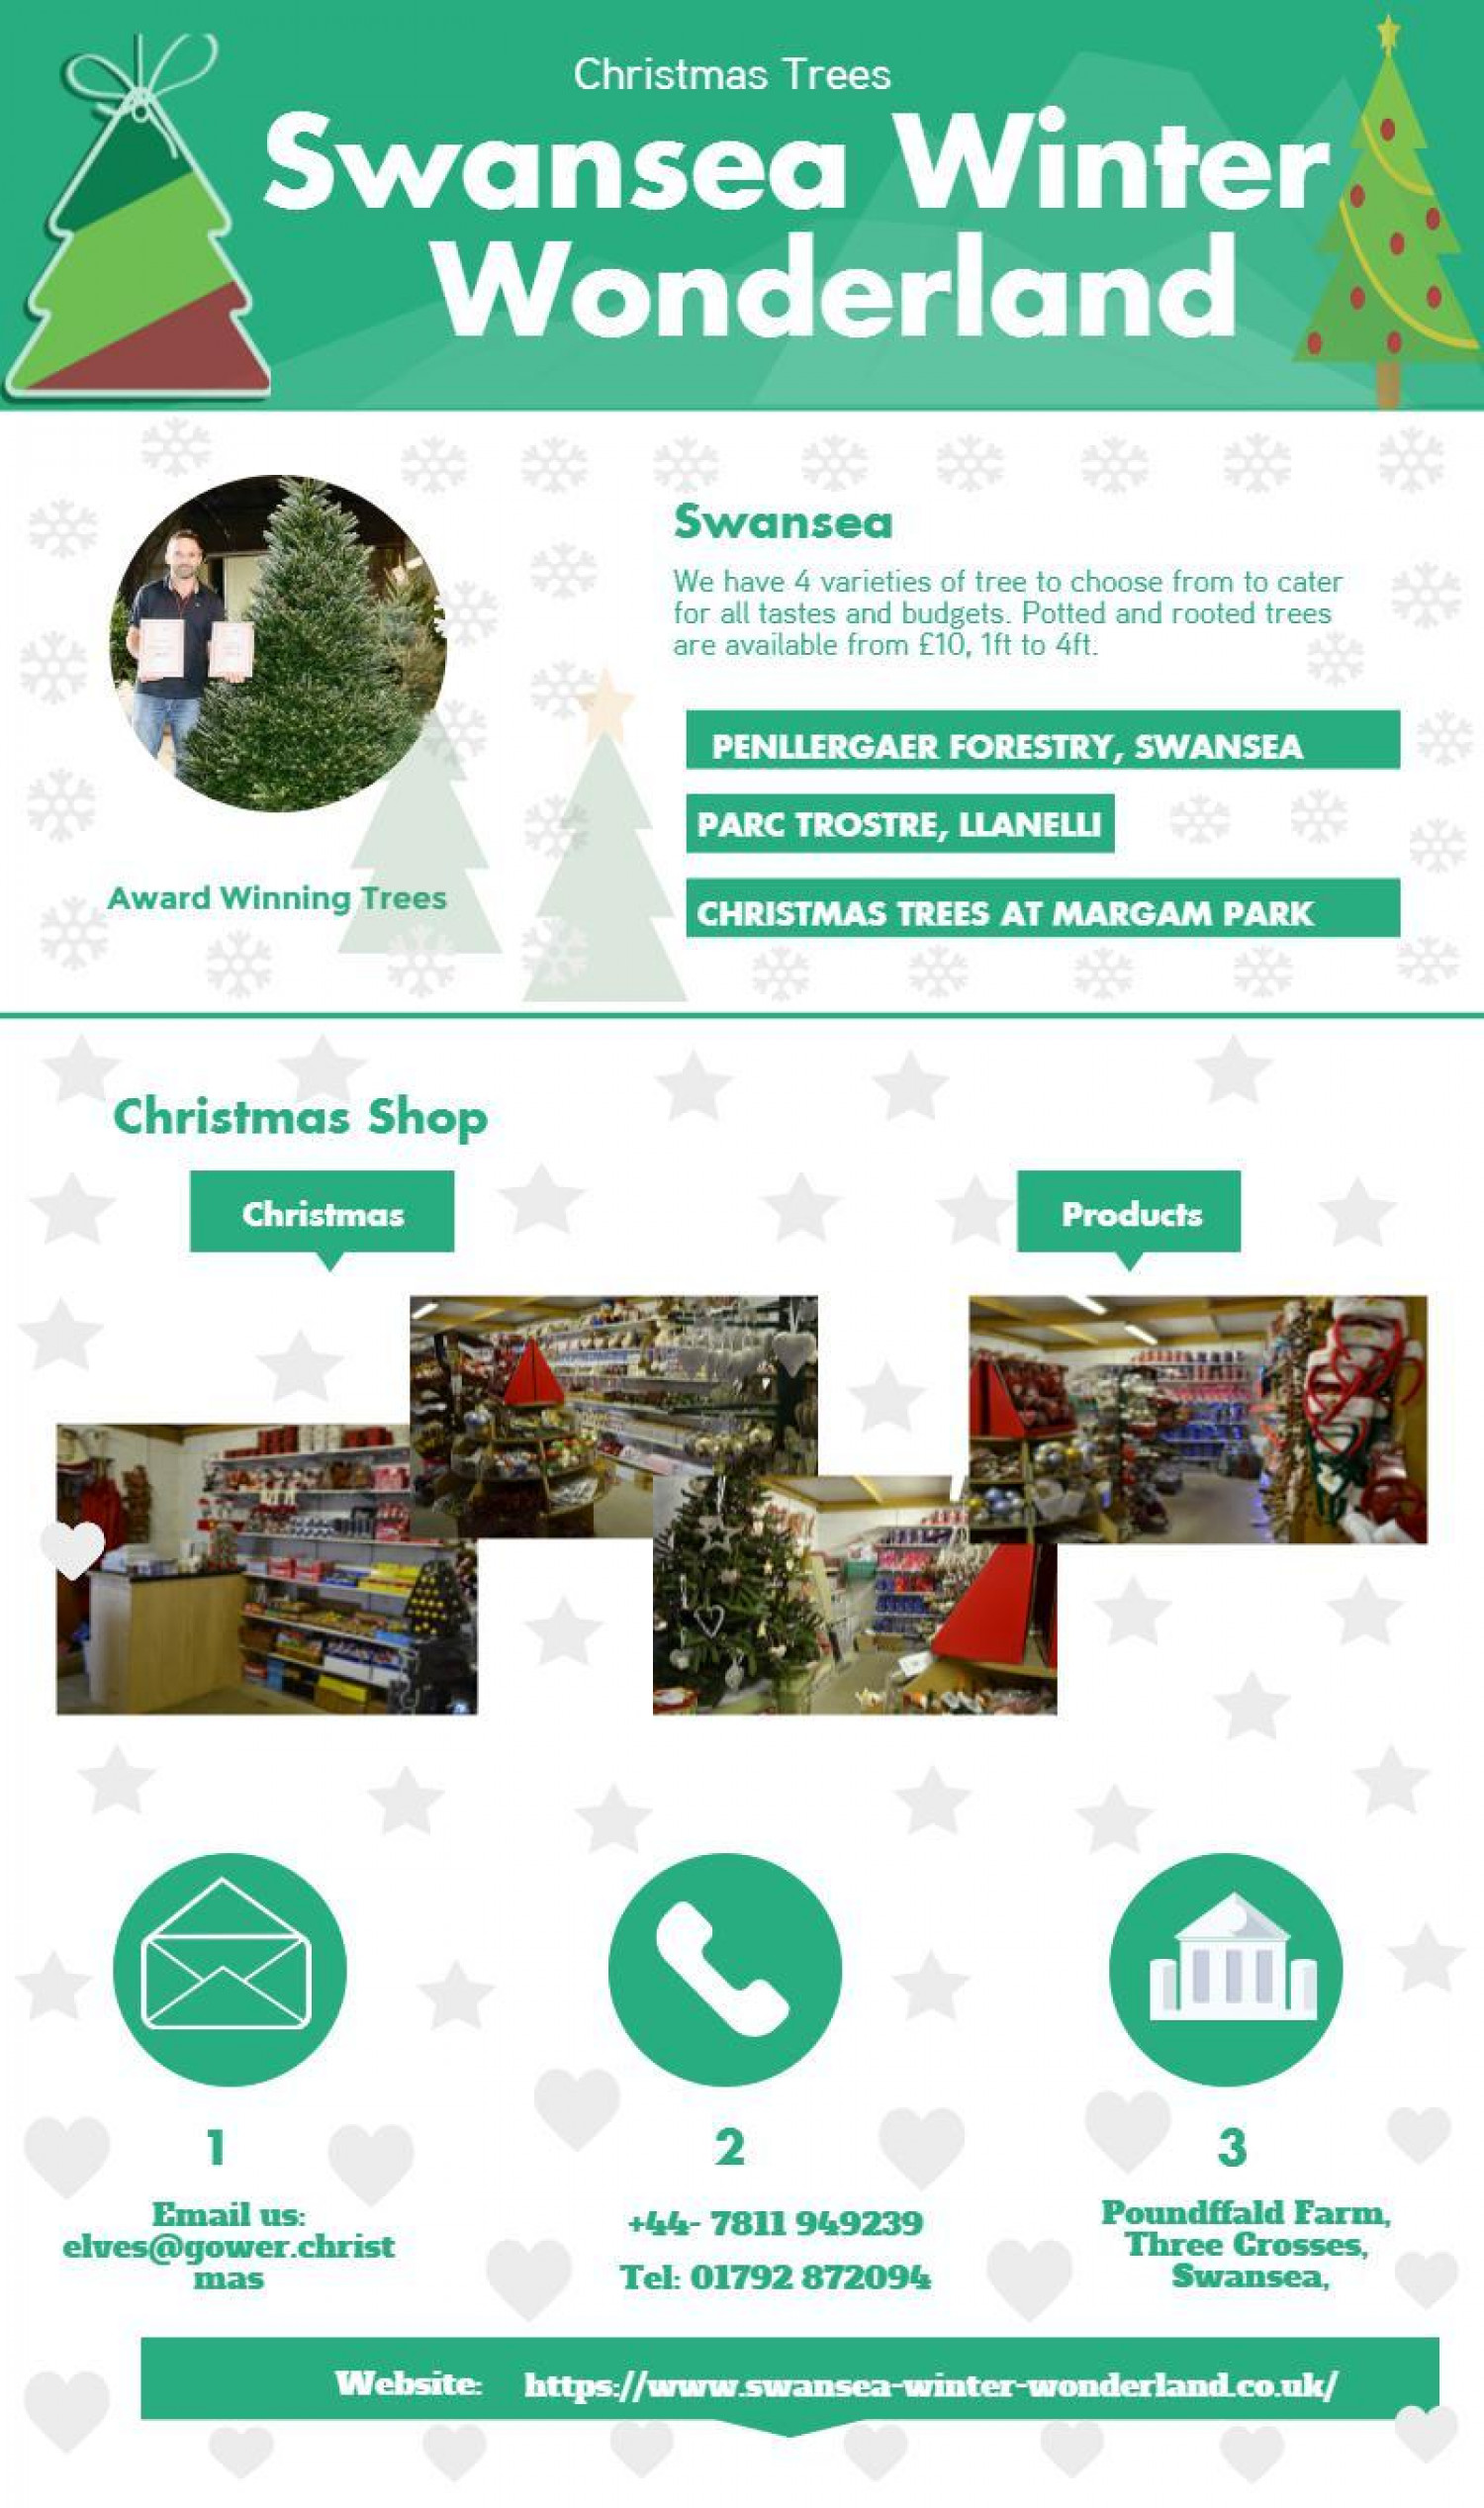 Christmas Gifts services from Swansea Winter Wonderland Infographic